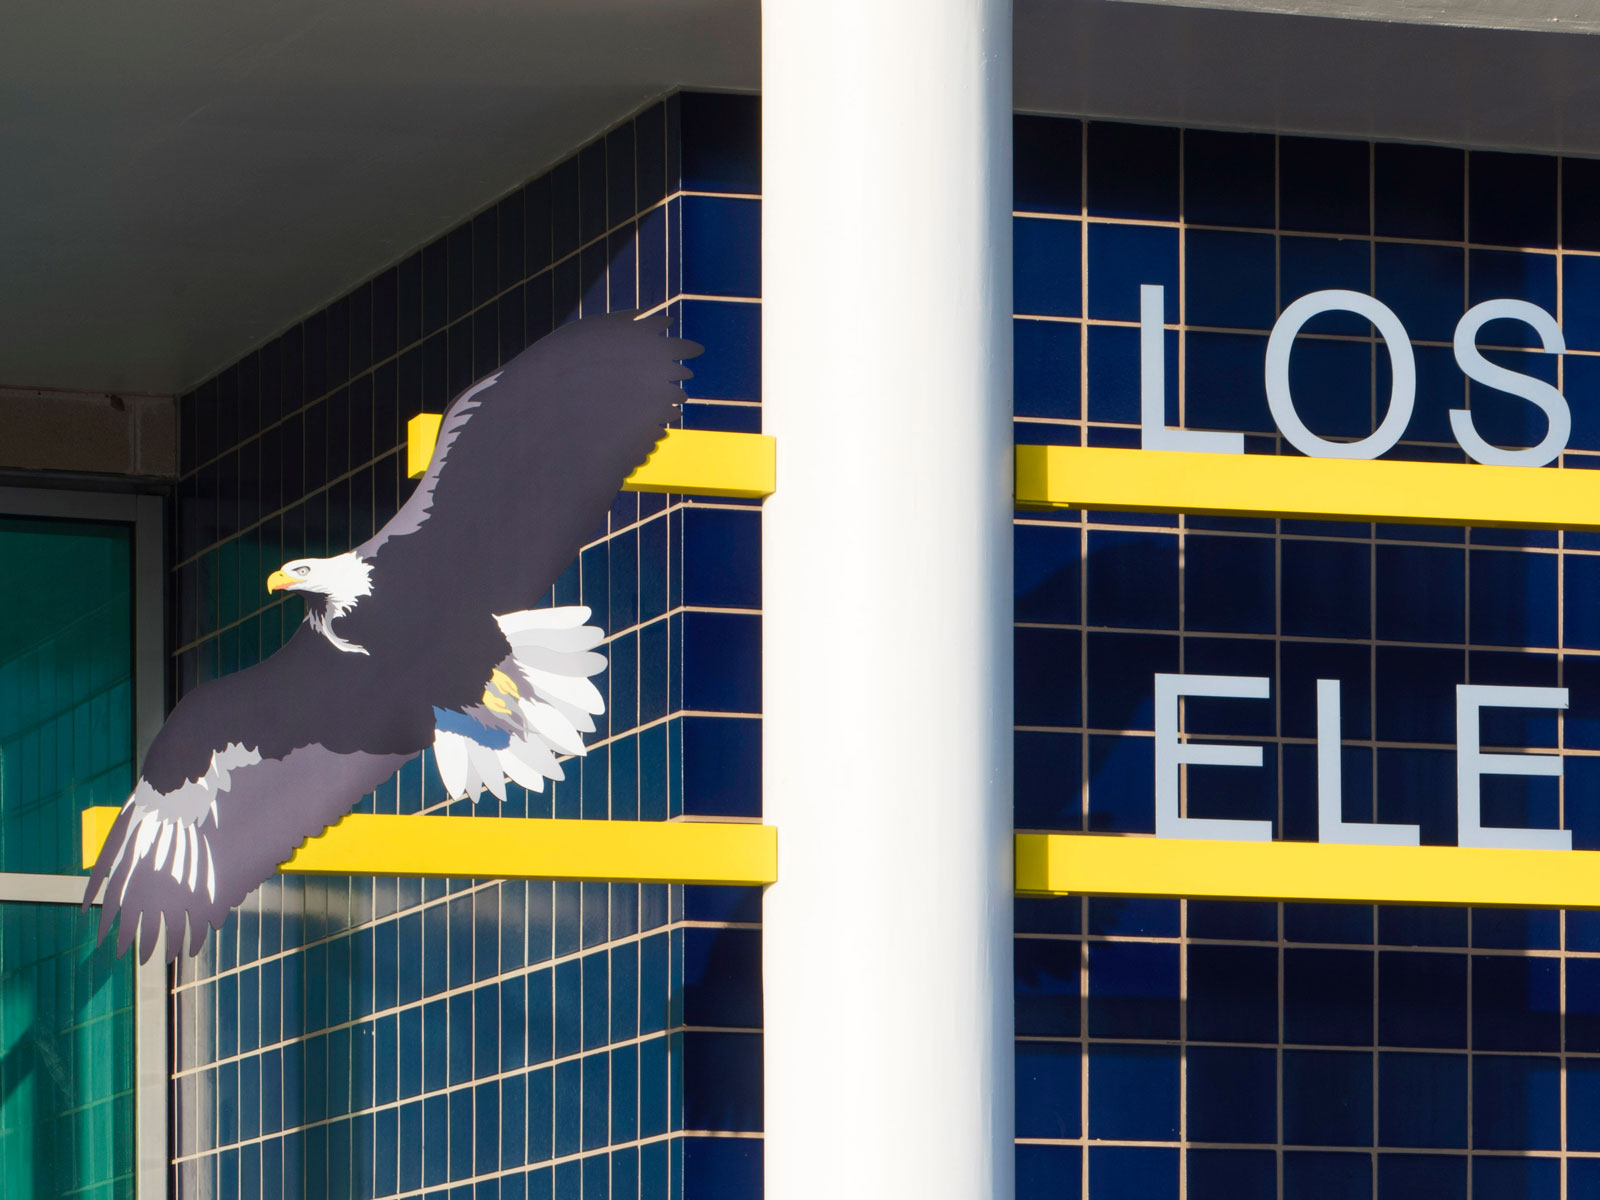 """12"""" High Painted Aluminum Letters, Bar Mounted, 48"""" High Mascot With Digital Printed Graphics"""